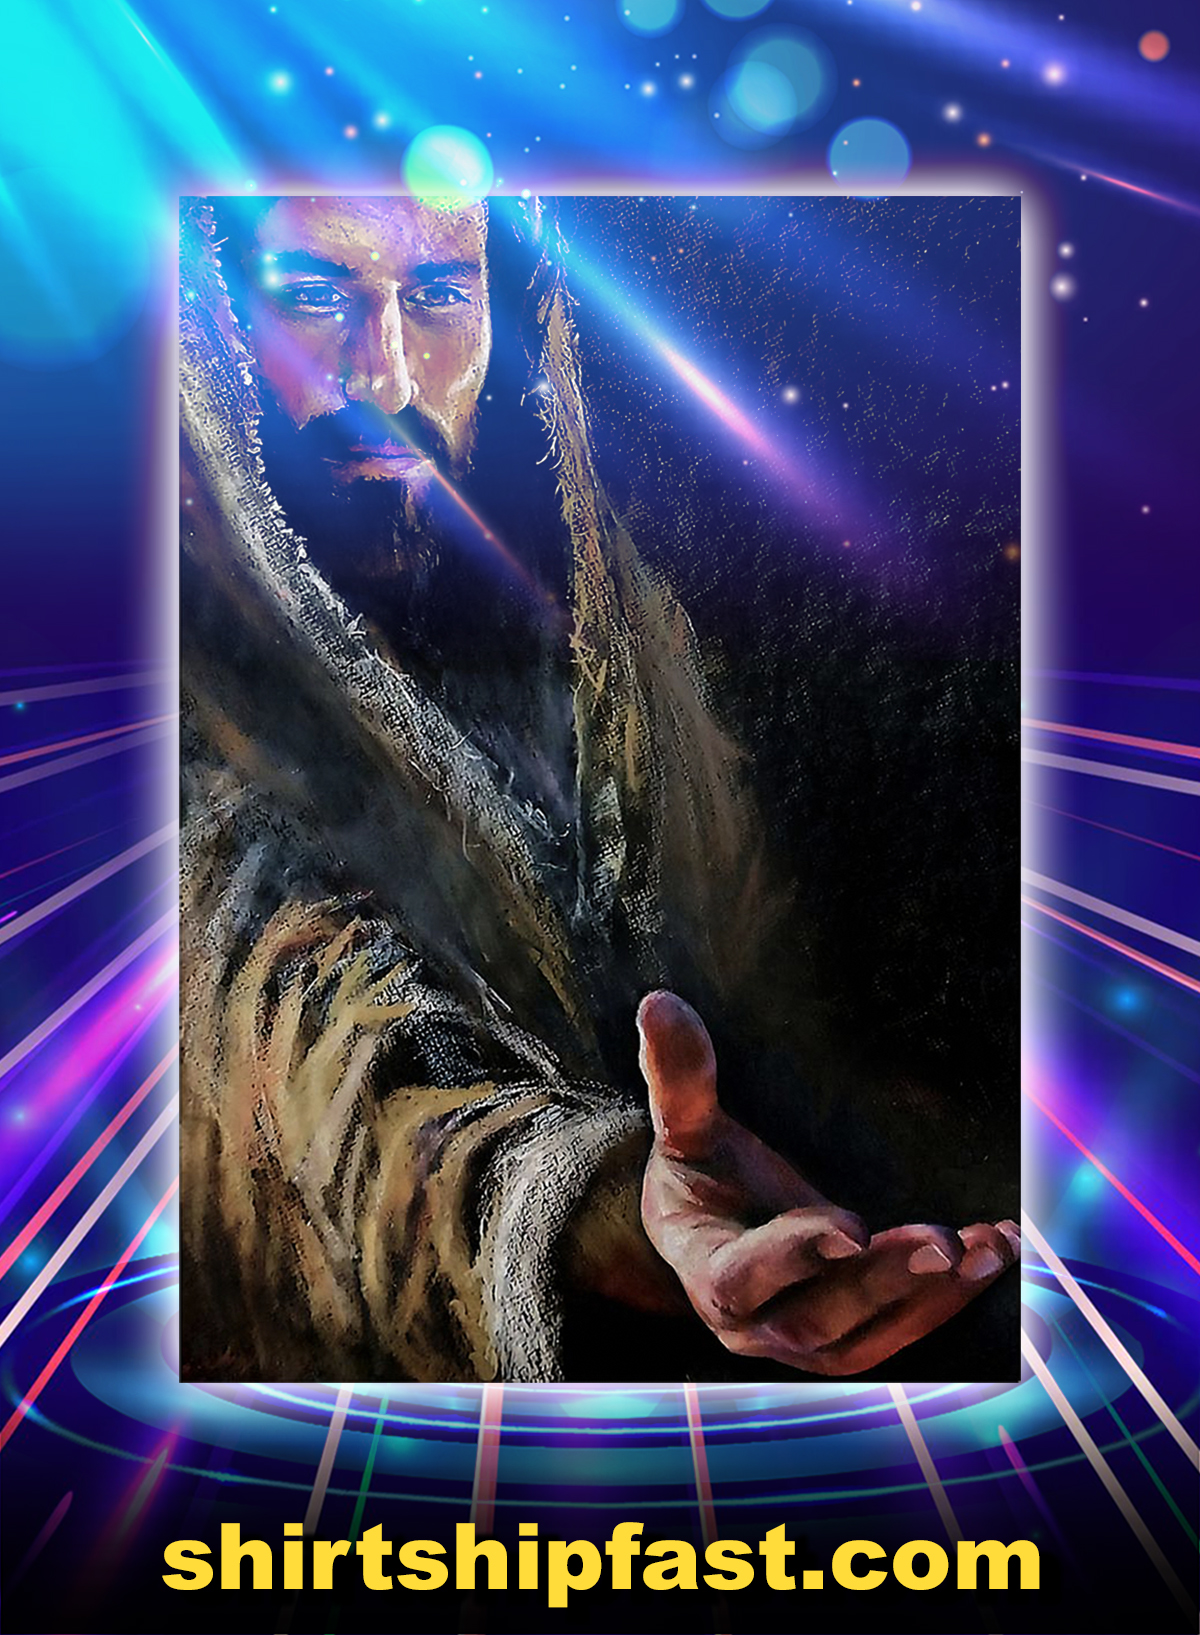 Jesus reaching hand poster - A1